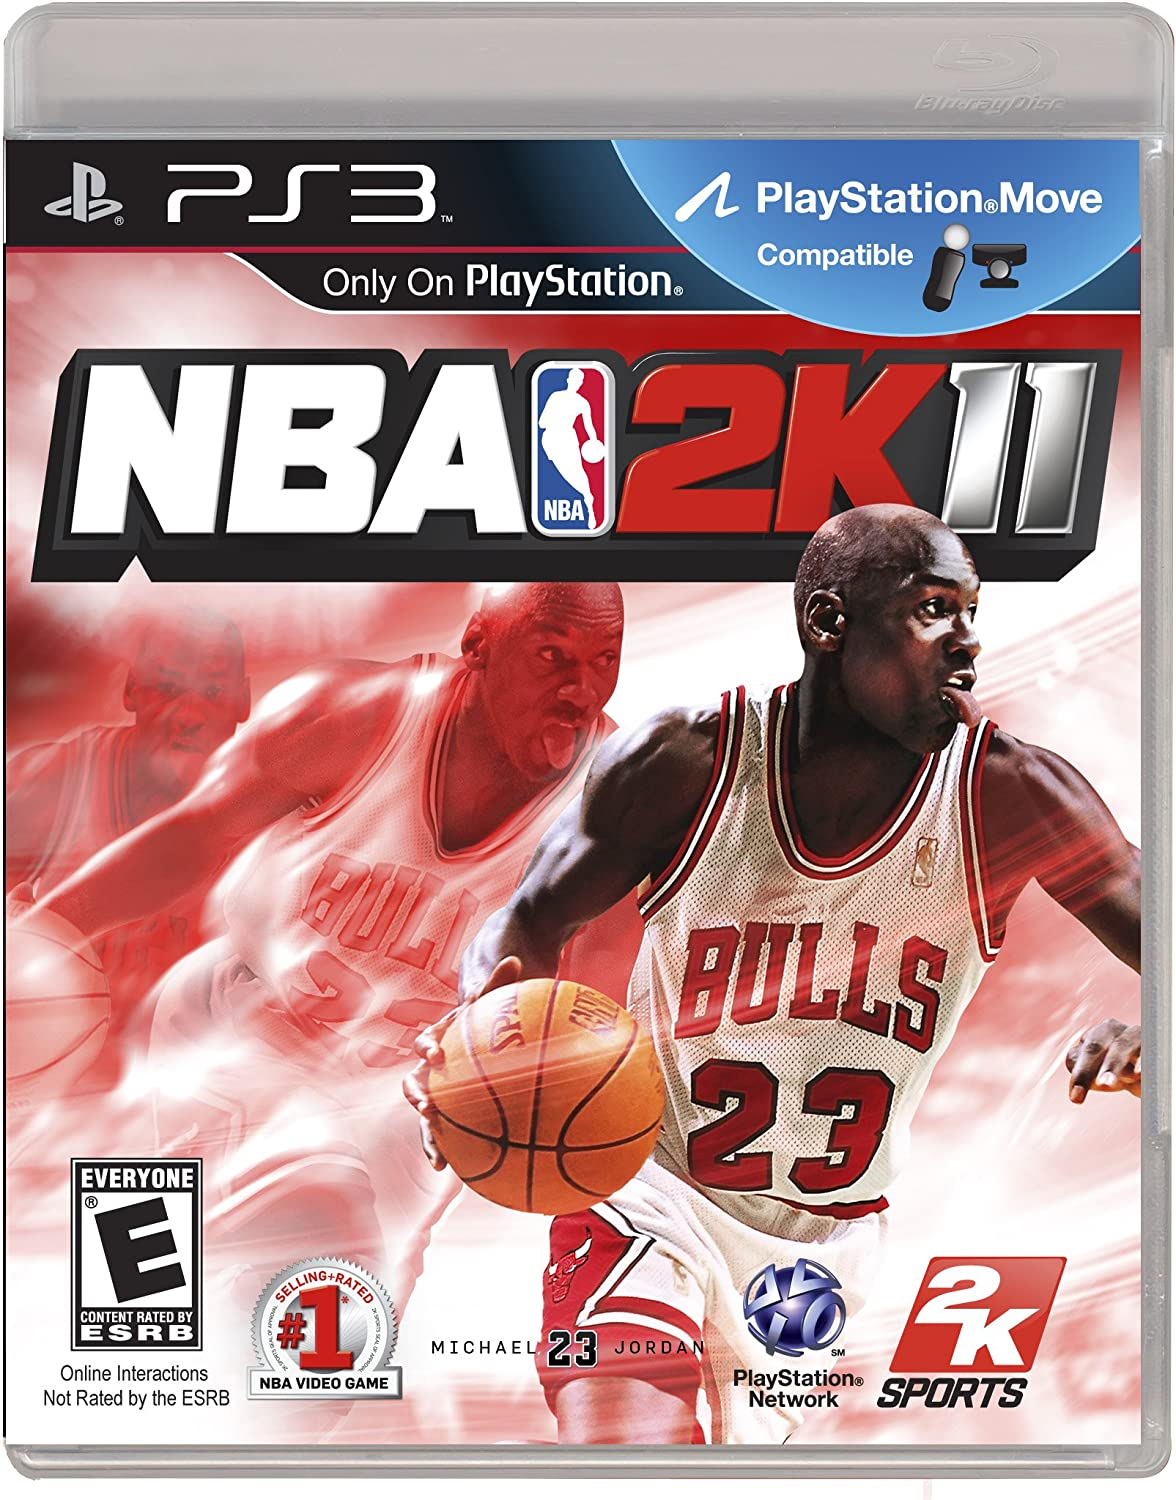 nba 2k11 roster download pc